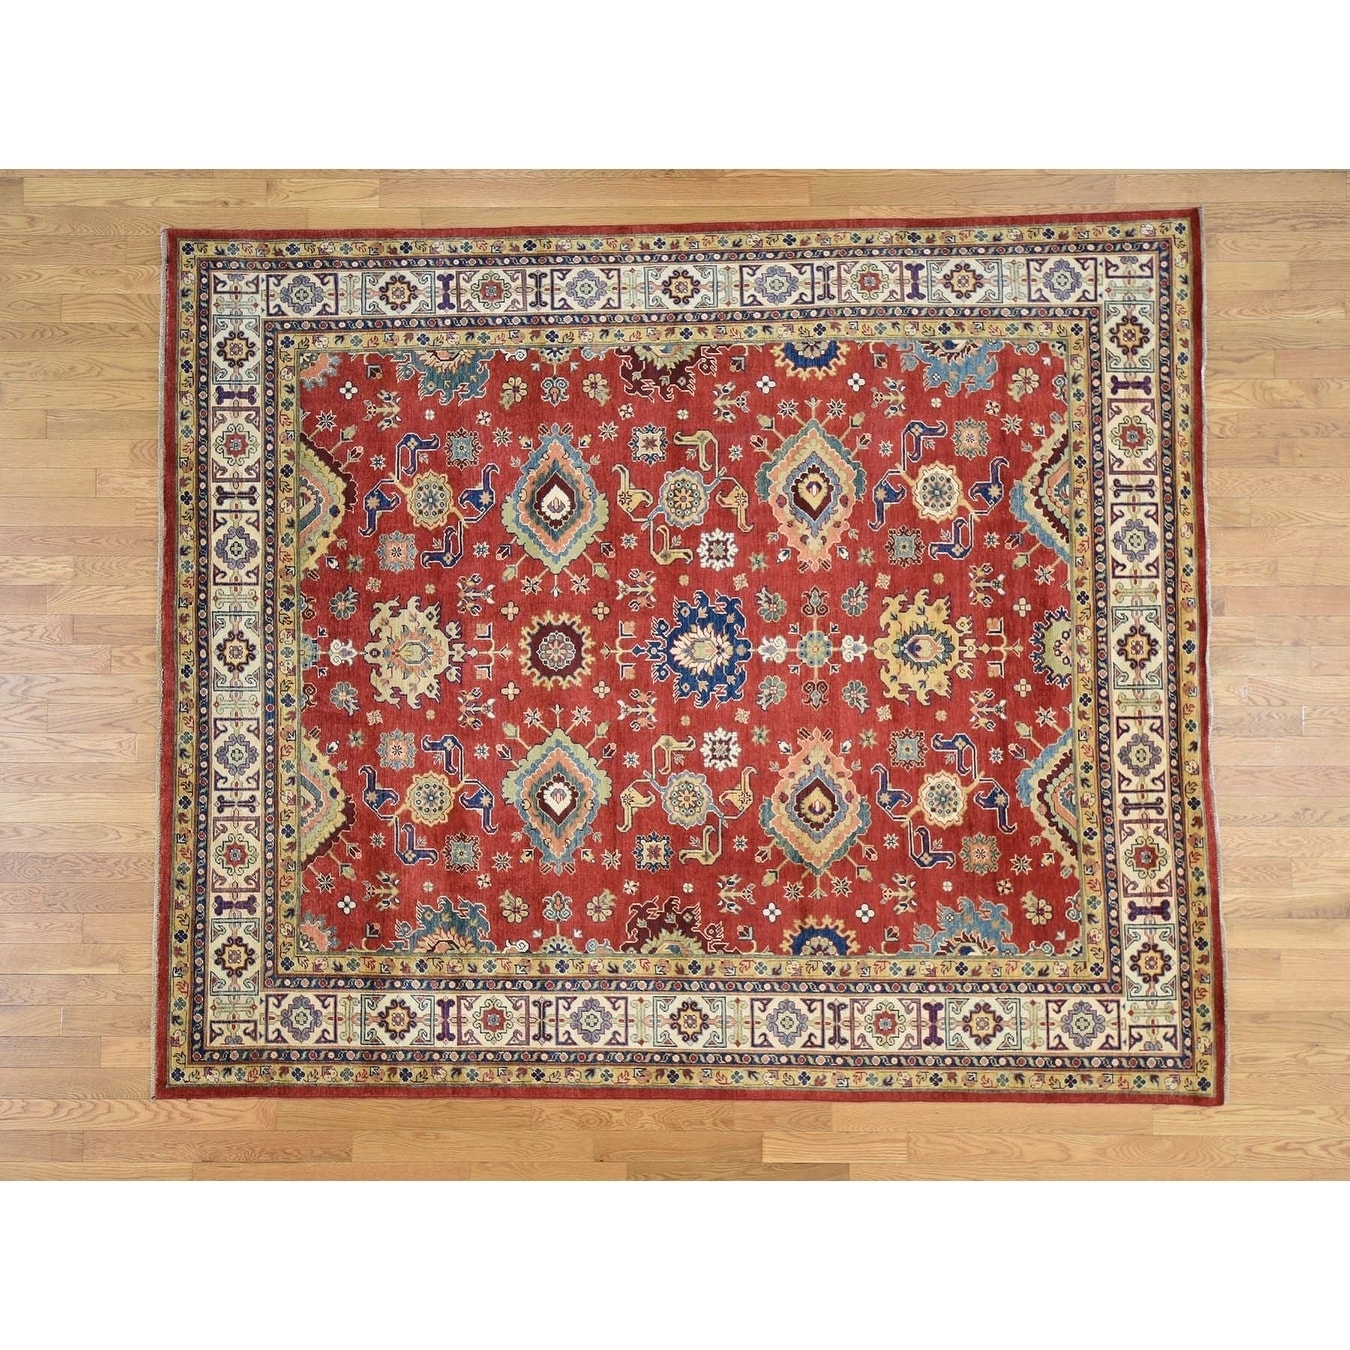 Hand Knotted Red Kazak with Wool Oriental Rug - 81 x 97